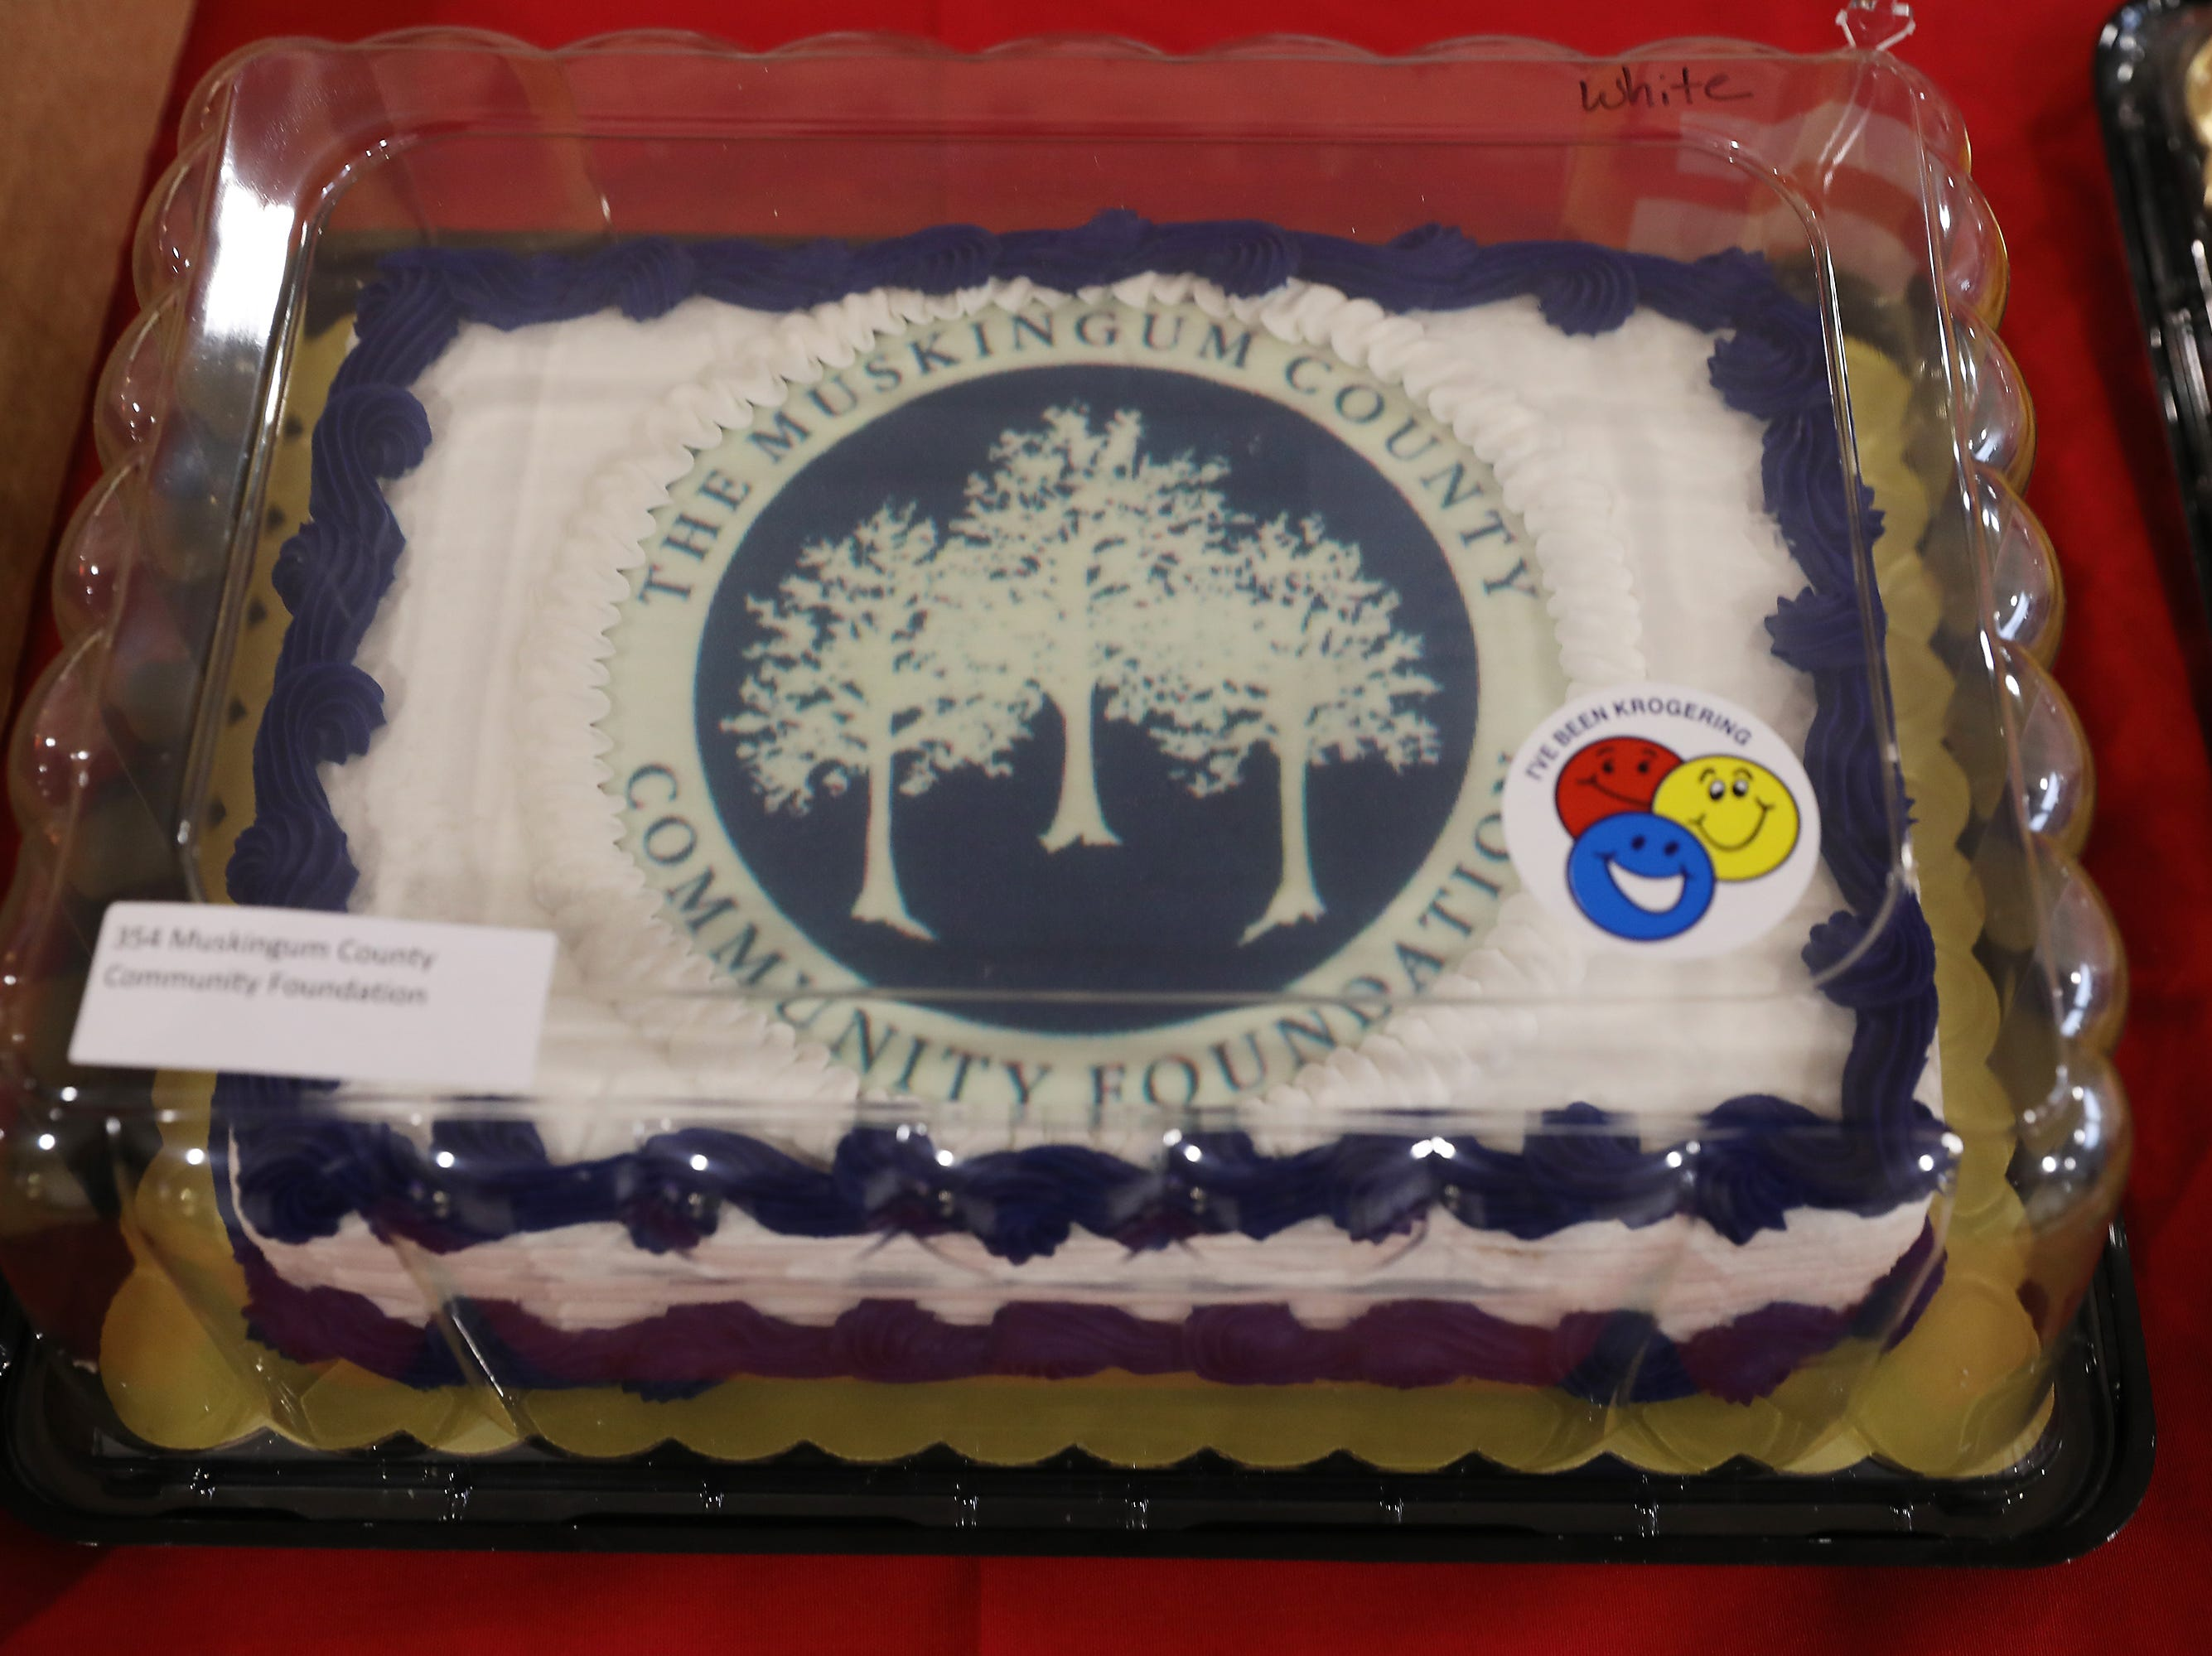 3:15 P.M. Friday cake 354 Muskingum County Community Foundation - 2 tickets to the Foundation's Groundhog event, MCCF related items; $100